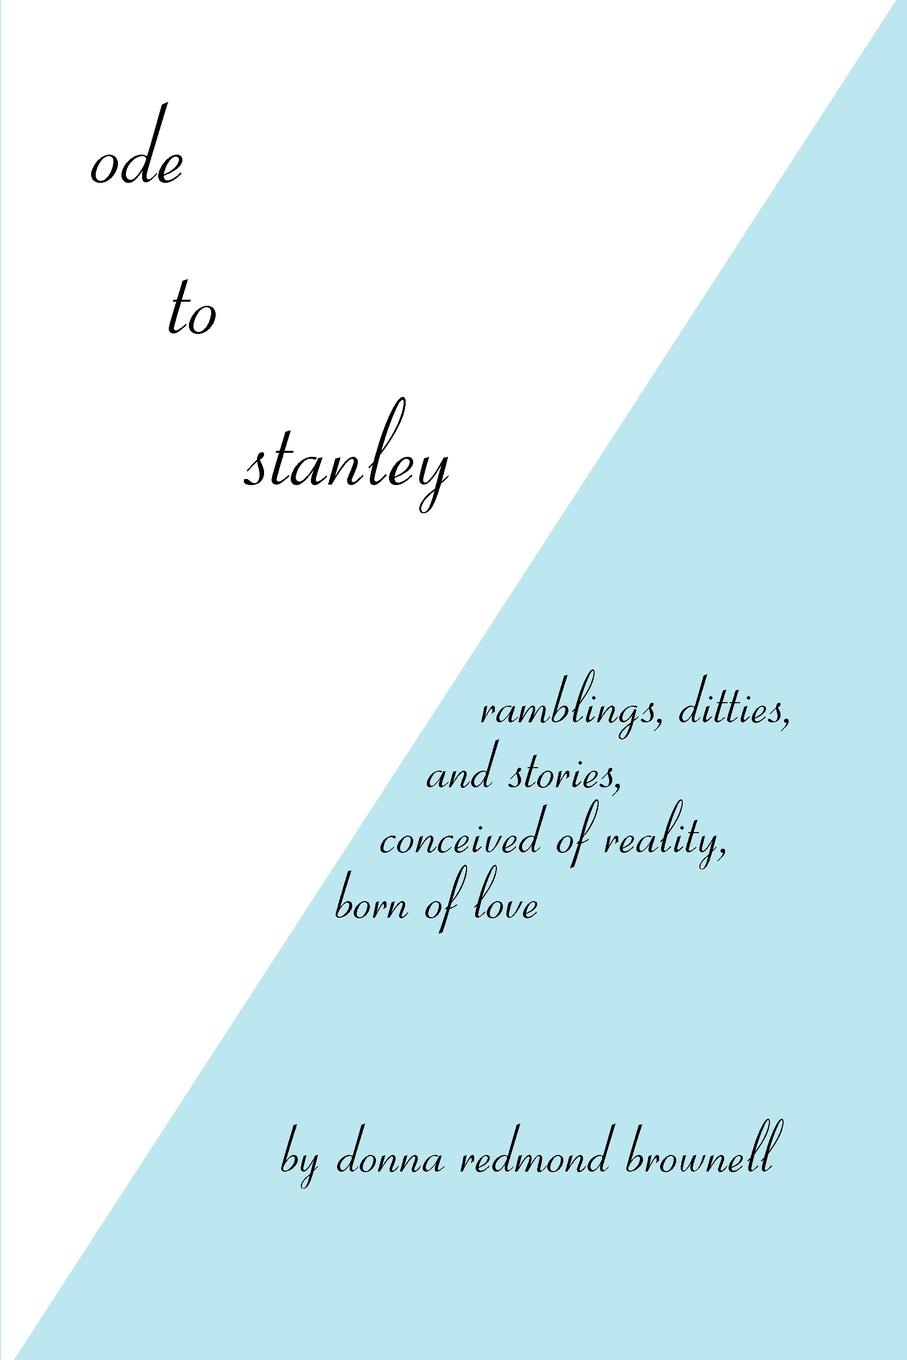 Ode to Stanley. Ramblings, Ditties and Stories, Conceived of Reality, Born of Love. Donna Redmond Brownell